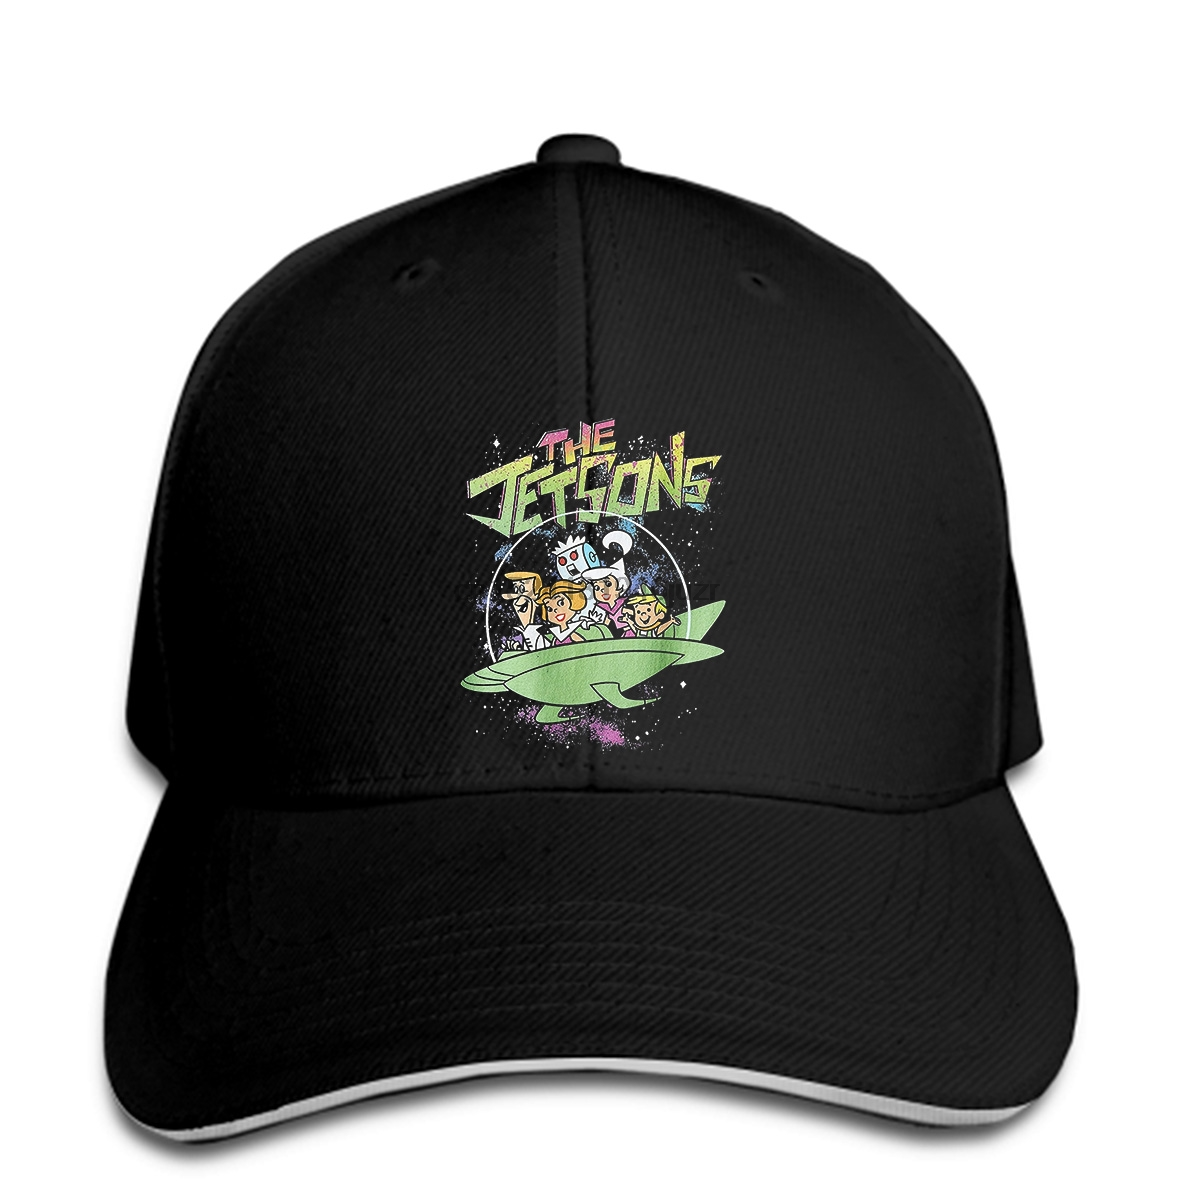 Trustful Hip Hop Baseball Caps Cool Hanna Barbera Men The Jetsons Cap Women Snapback Utmost In Convenience Men's Hats Back To Search Resultsapparel Accessories